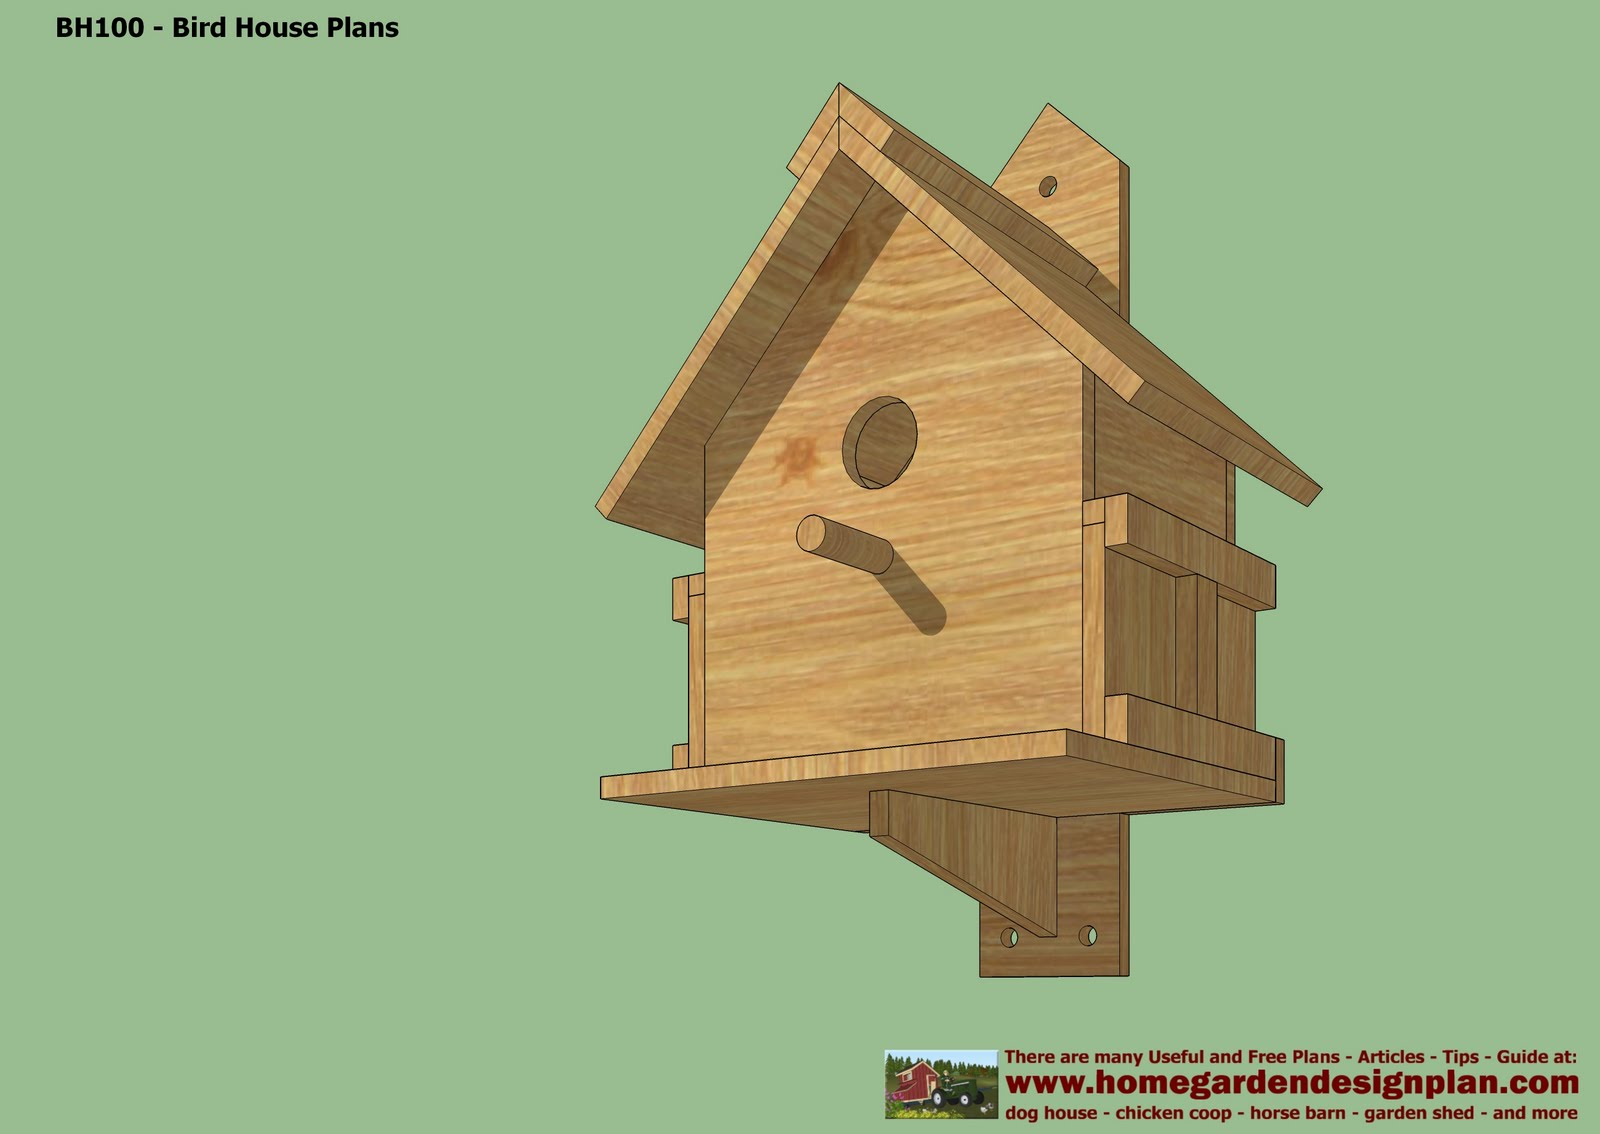 Bh100 1 1 bird house plans free free bird house for Small bird house plans